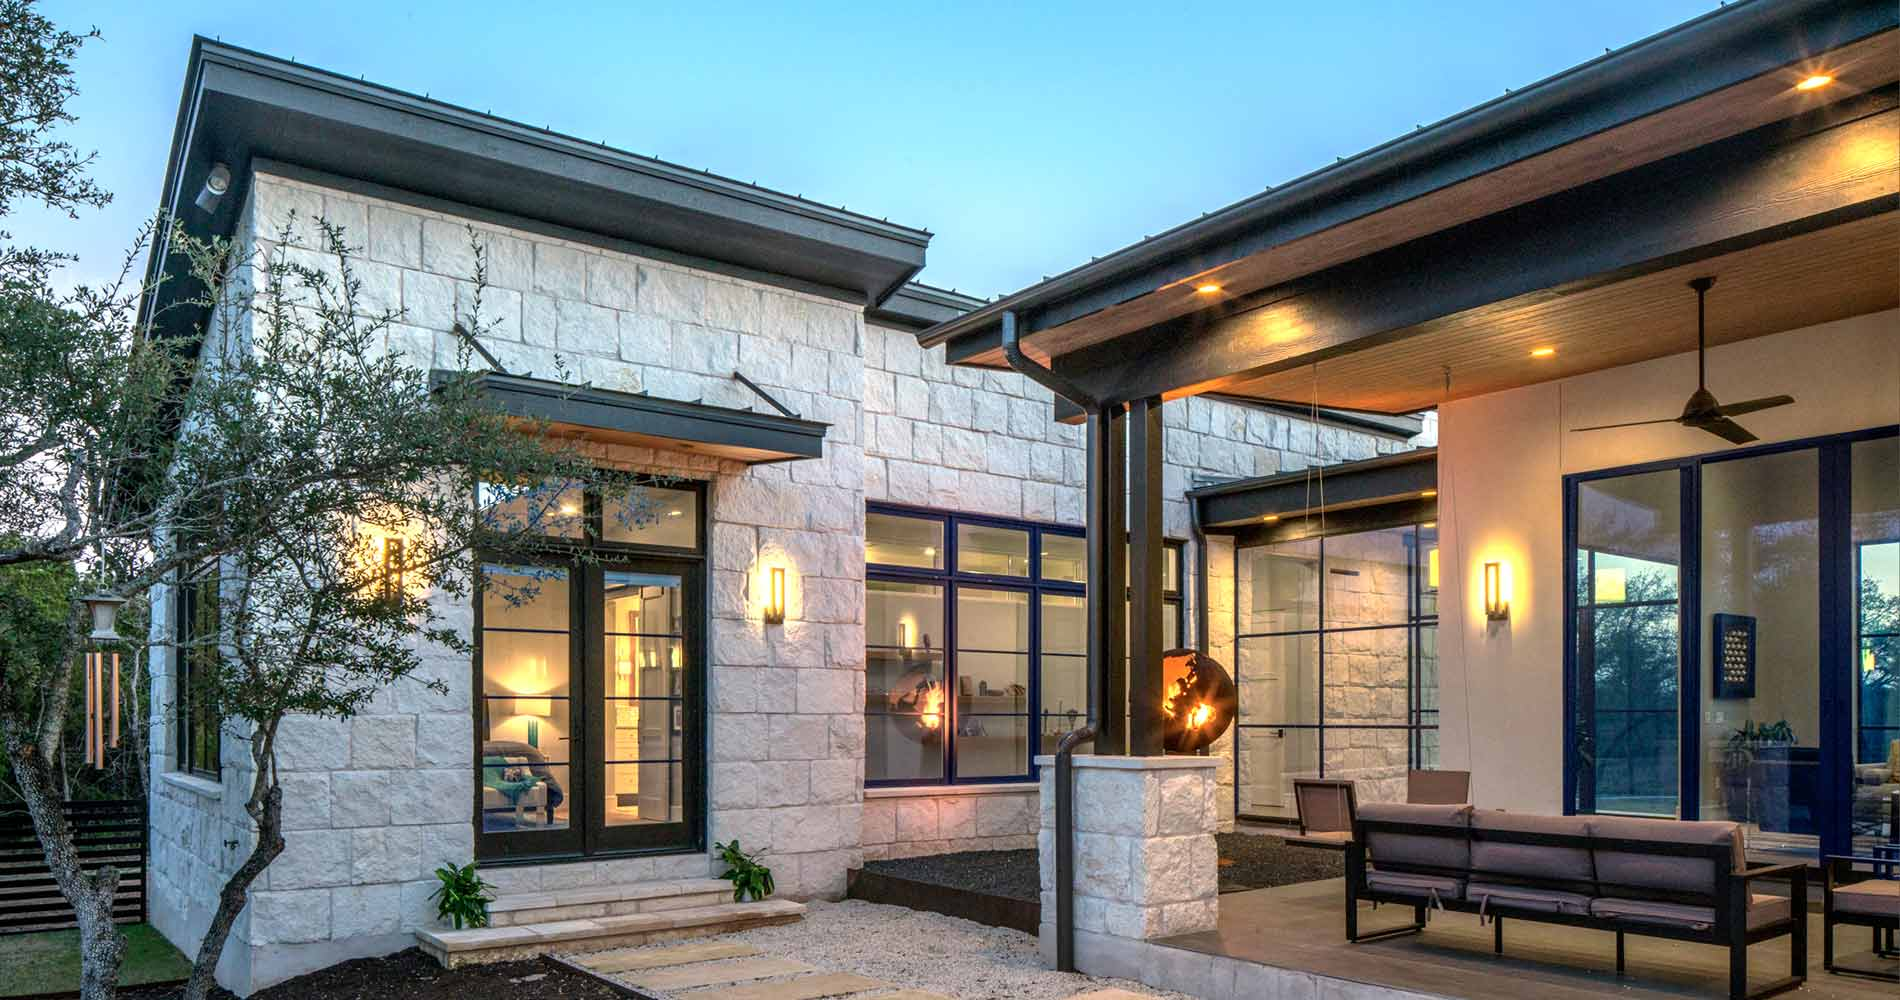 modern-ranch-home-rambler-patio – Sendero Homes on ranch home carports, farm patio designs, ranch home modern design, double wide patio designs, ranch home front yard landscaping, stone fireplace patio designs, bi-level patio designs, ranch home pergolas, ranch home garden ideas,